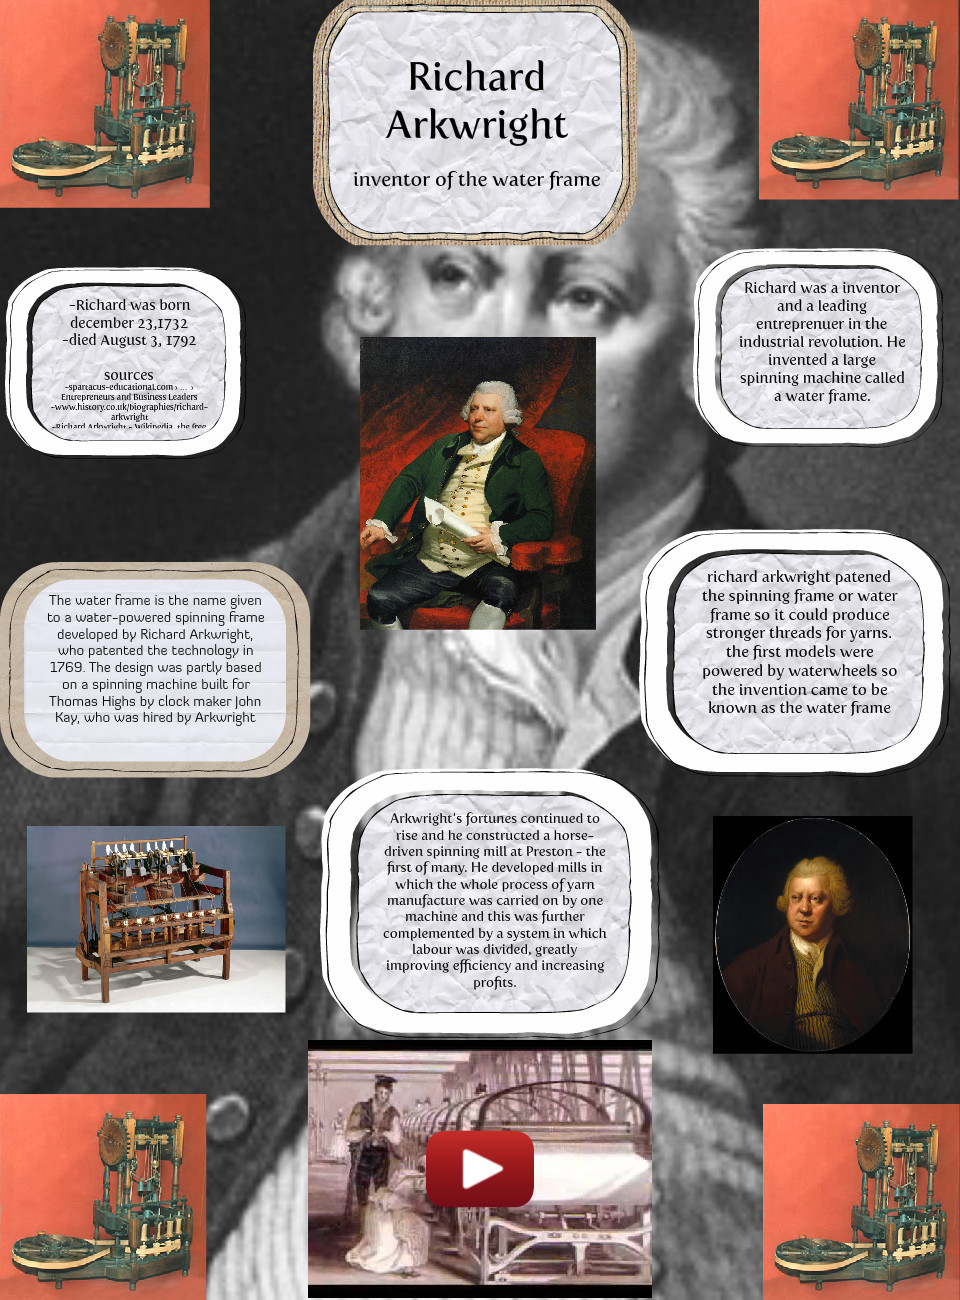 [2014] Cameron Patterson (Abby Anonson's class): Richard Arkwright - Inventor Of The Water Frame